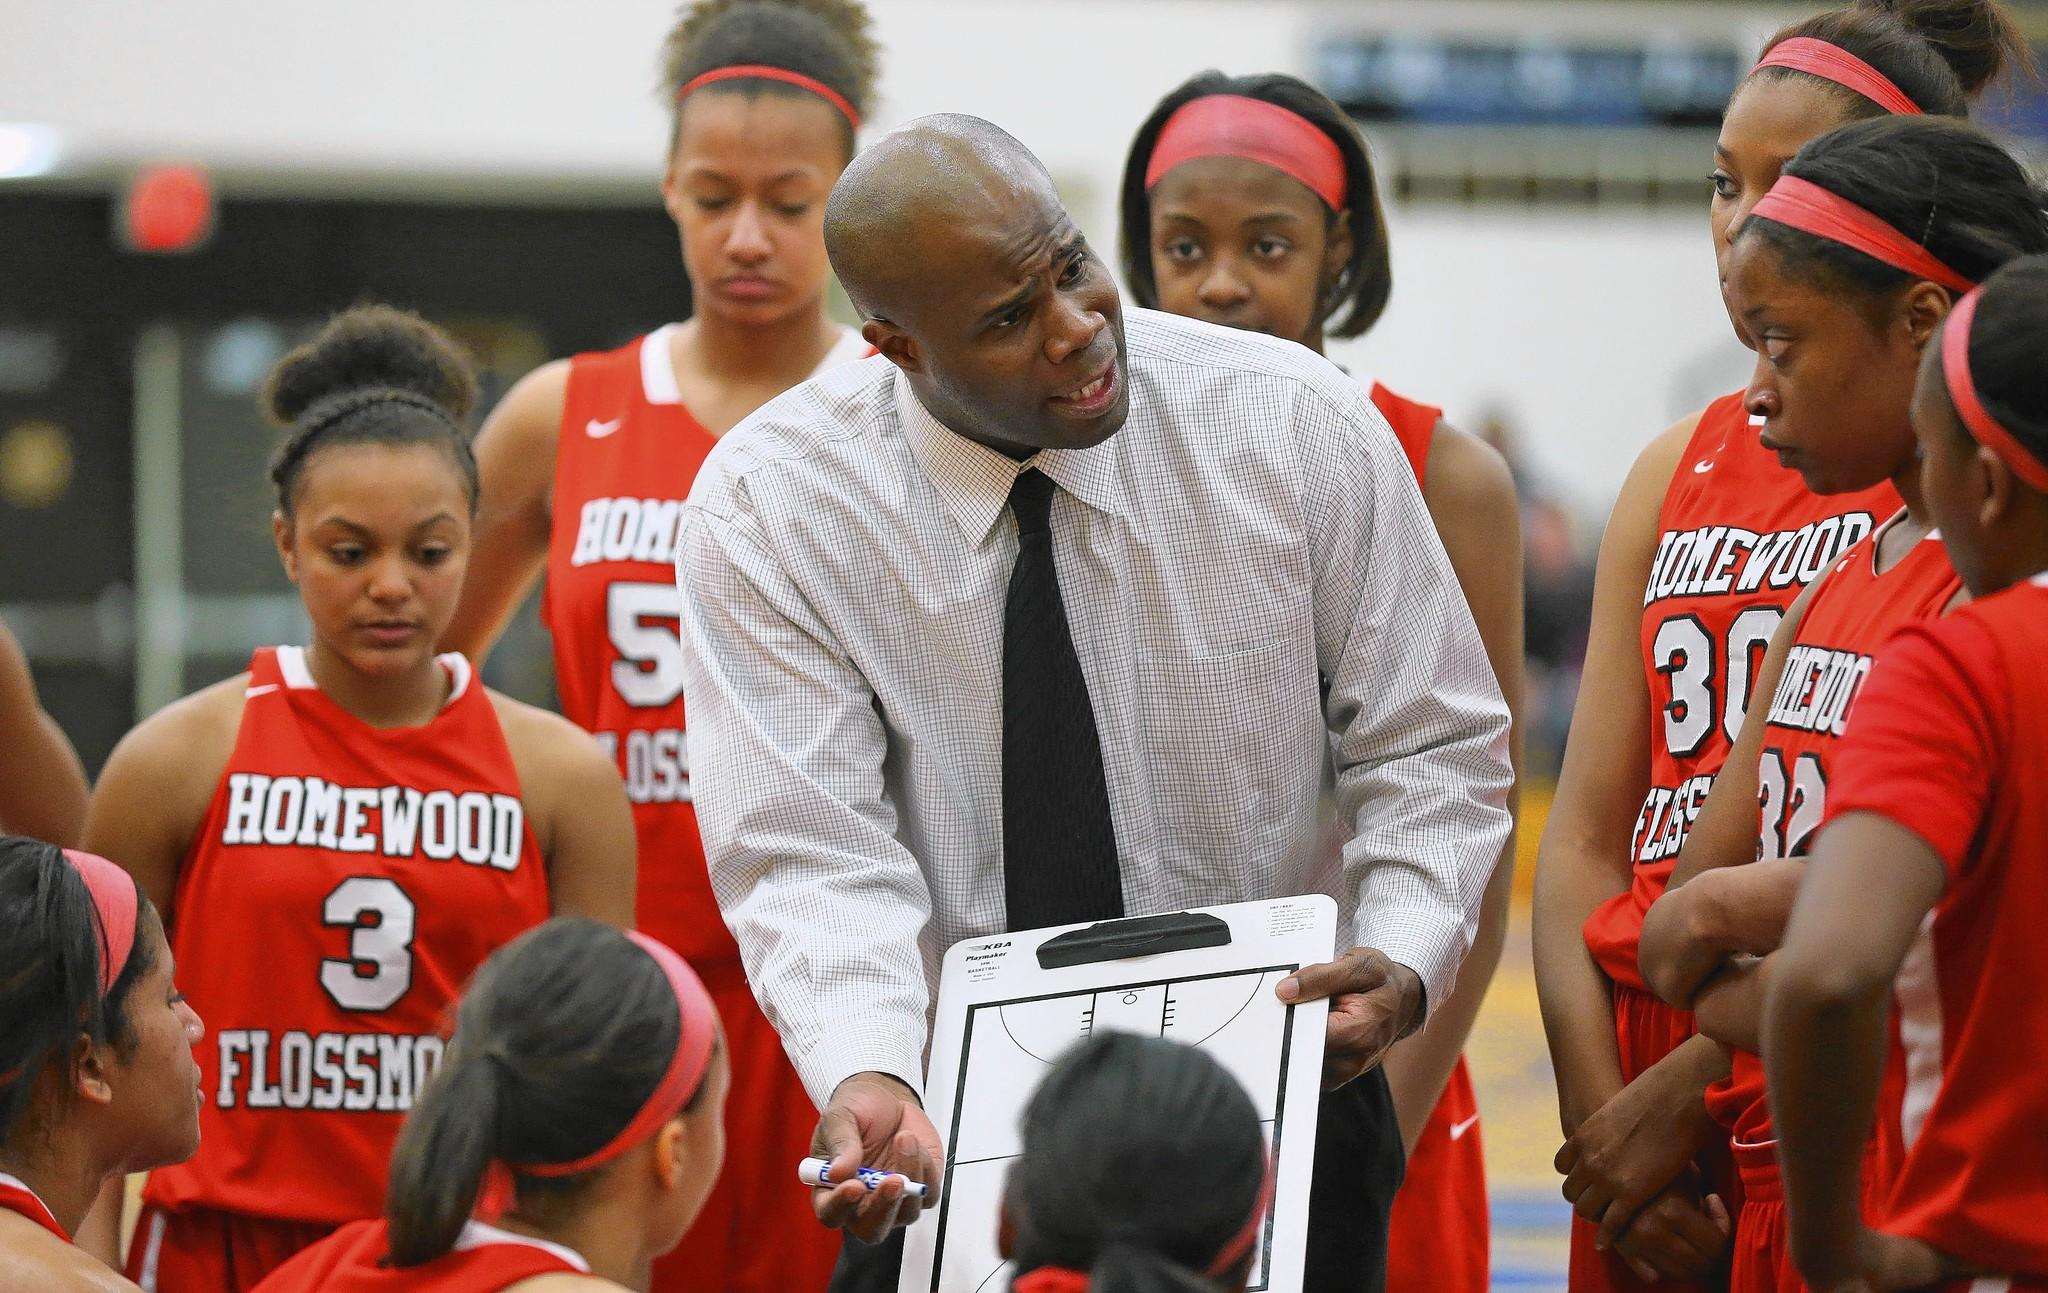 Homewood-Flossmoor coach Anthony Smith earned a national reputation after capturing four state titles at his previous position in Bolingbrook and is poised to repeat his success in his first season at his new school.